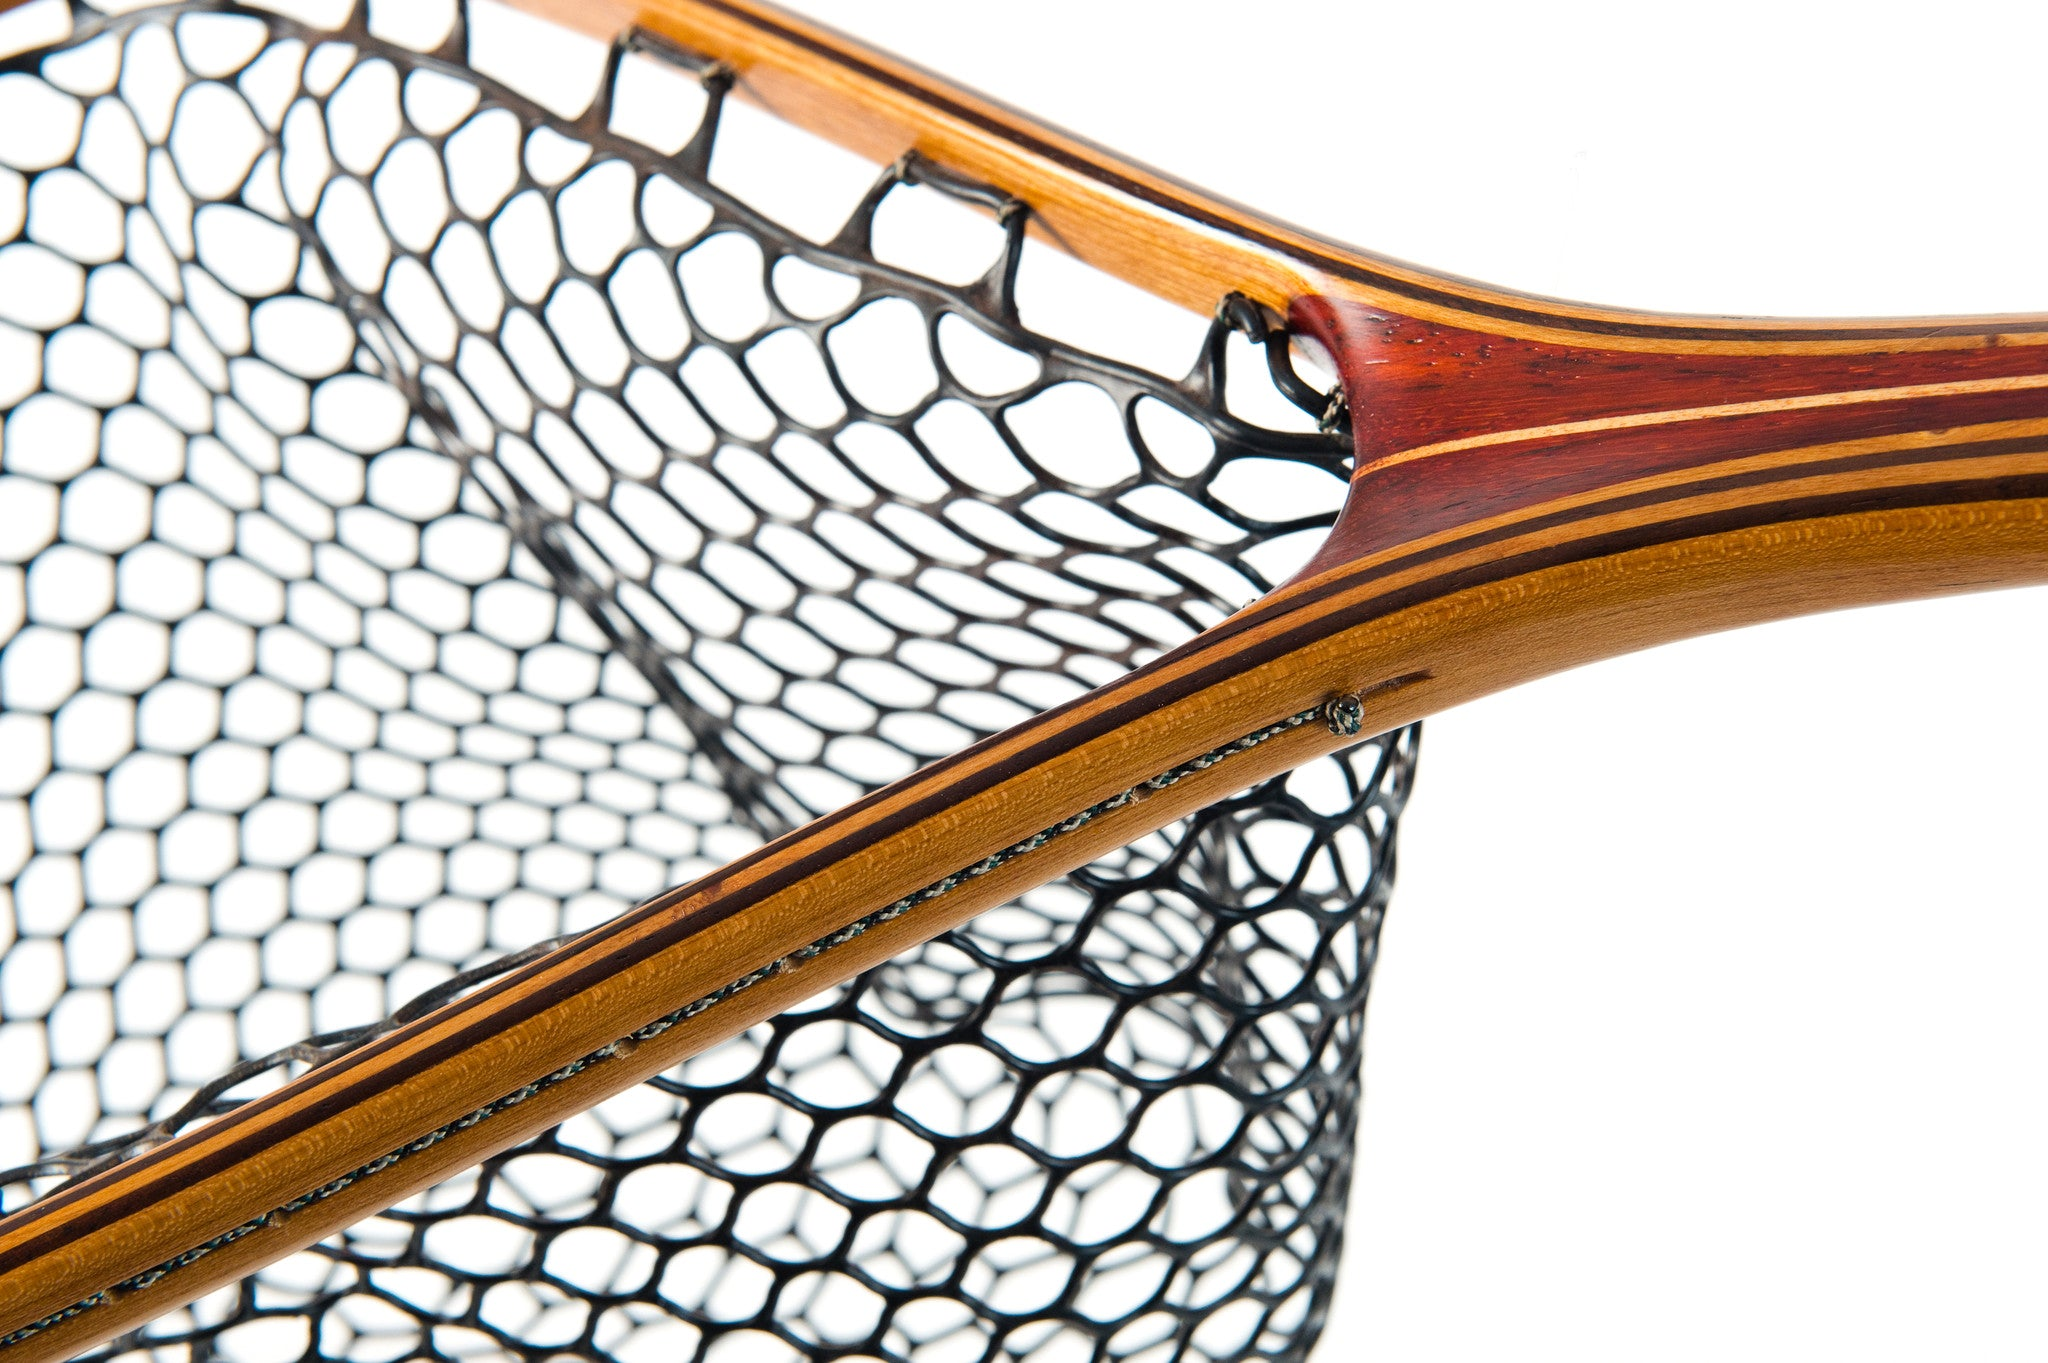 Thunder creek net. Tailwater Outdoors premium quality classic style fishing nets, handmade from high quality woods. Ideal for all fishing and outdoor enthusiasts.